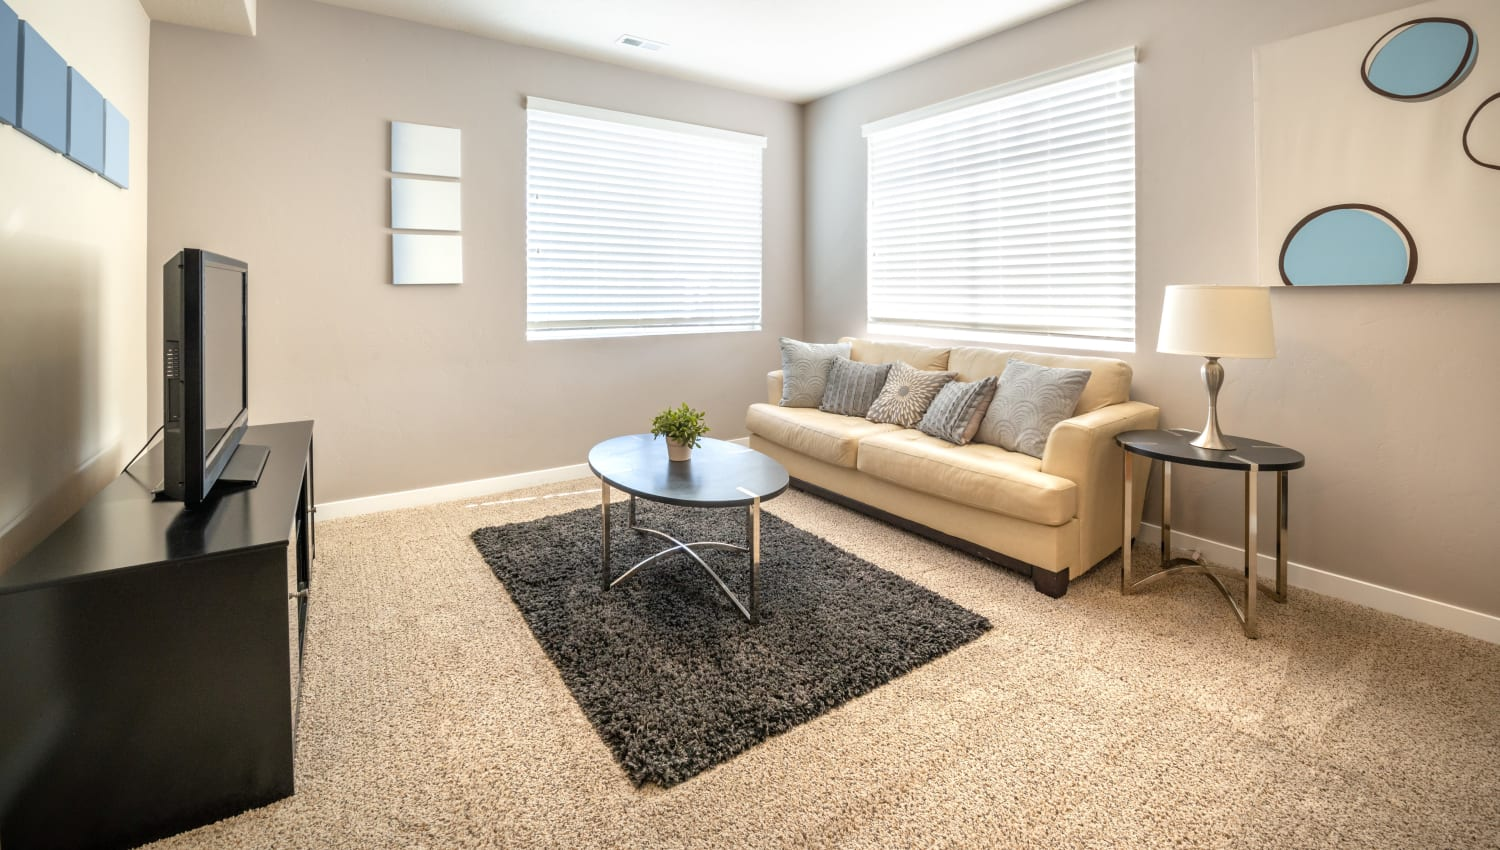 Spacious living room  at Olympus at the District in South Jordan, Utah features ample natural light from large windows